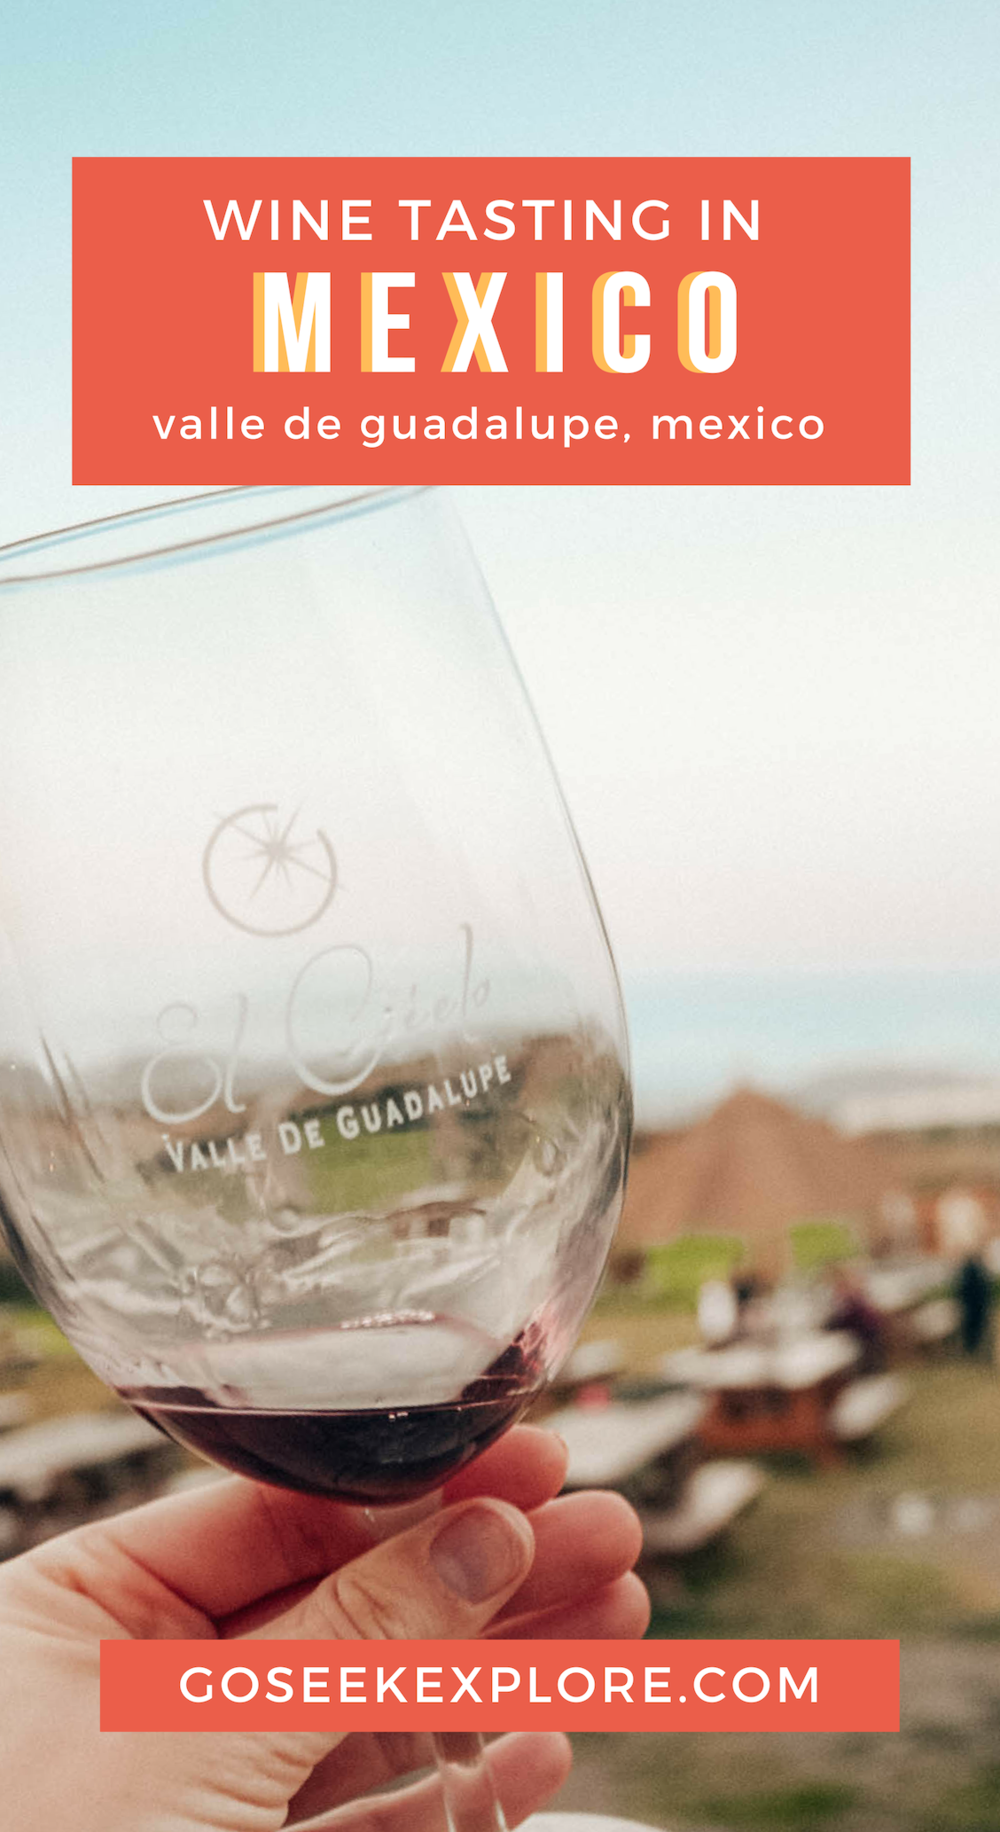 Mexico's Baja California is home to beautiful coastline AND wine! This post recaps wine Tasting in Mexico's Guadalupe Valley - two wineries we visited, plus a Frida Kahlo-inspired restaurant! #mexico #winetasting #mexicotravel #travelblogger #travelblog #bajacalifornia